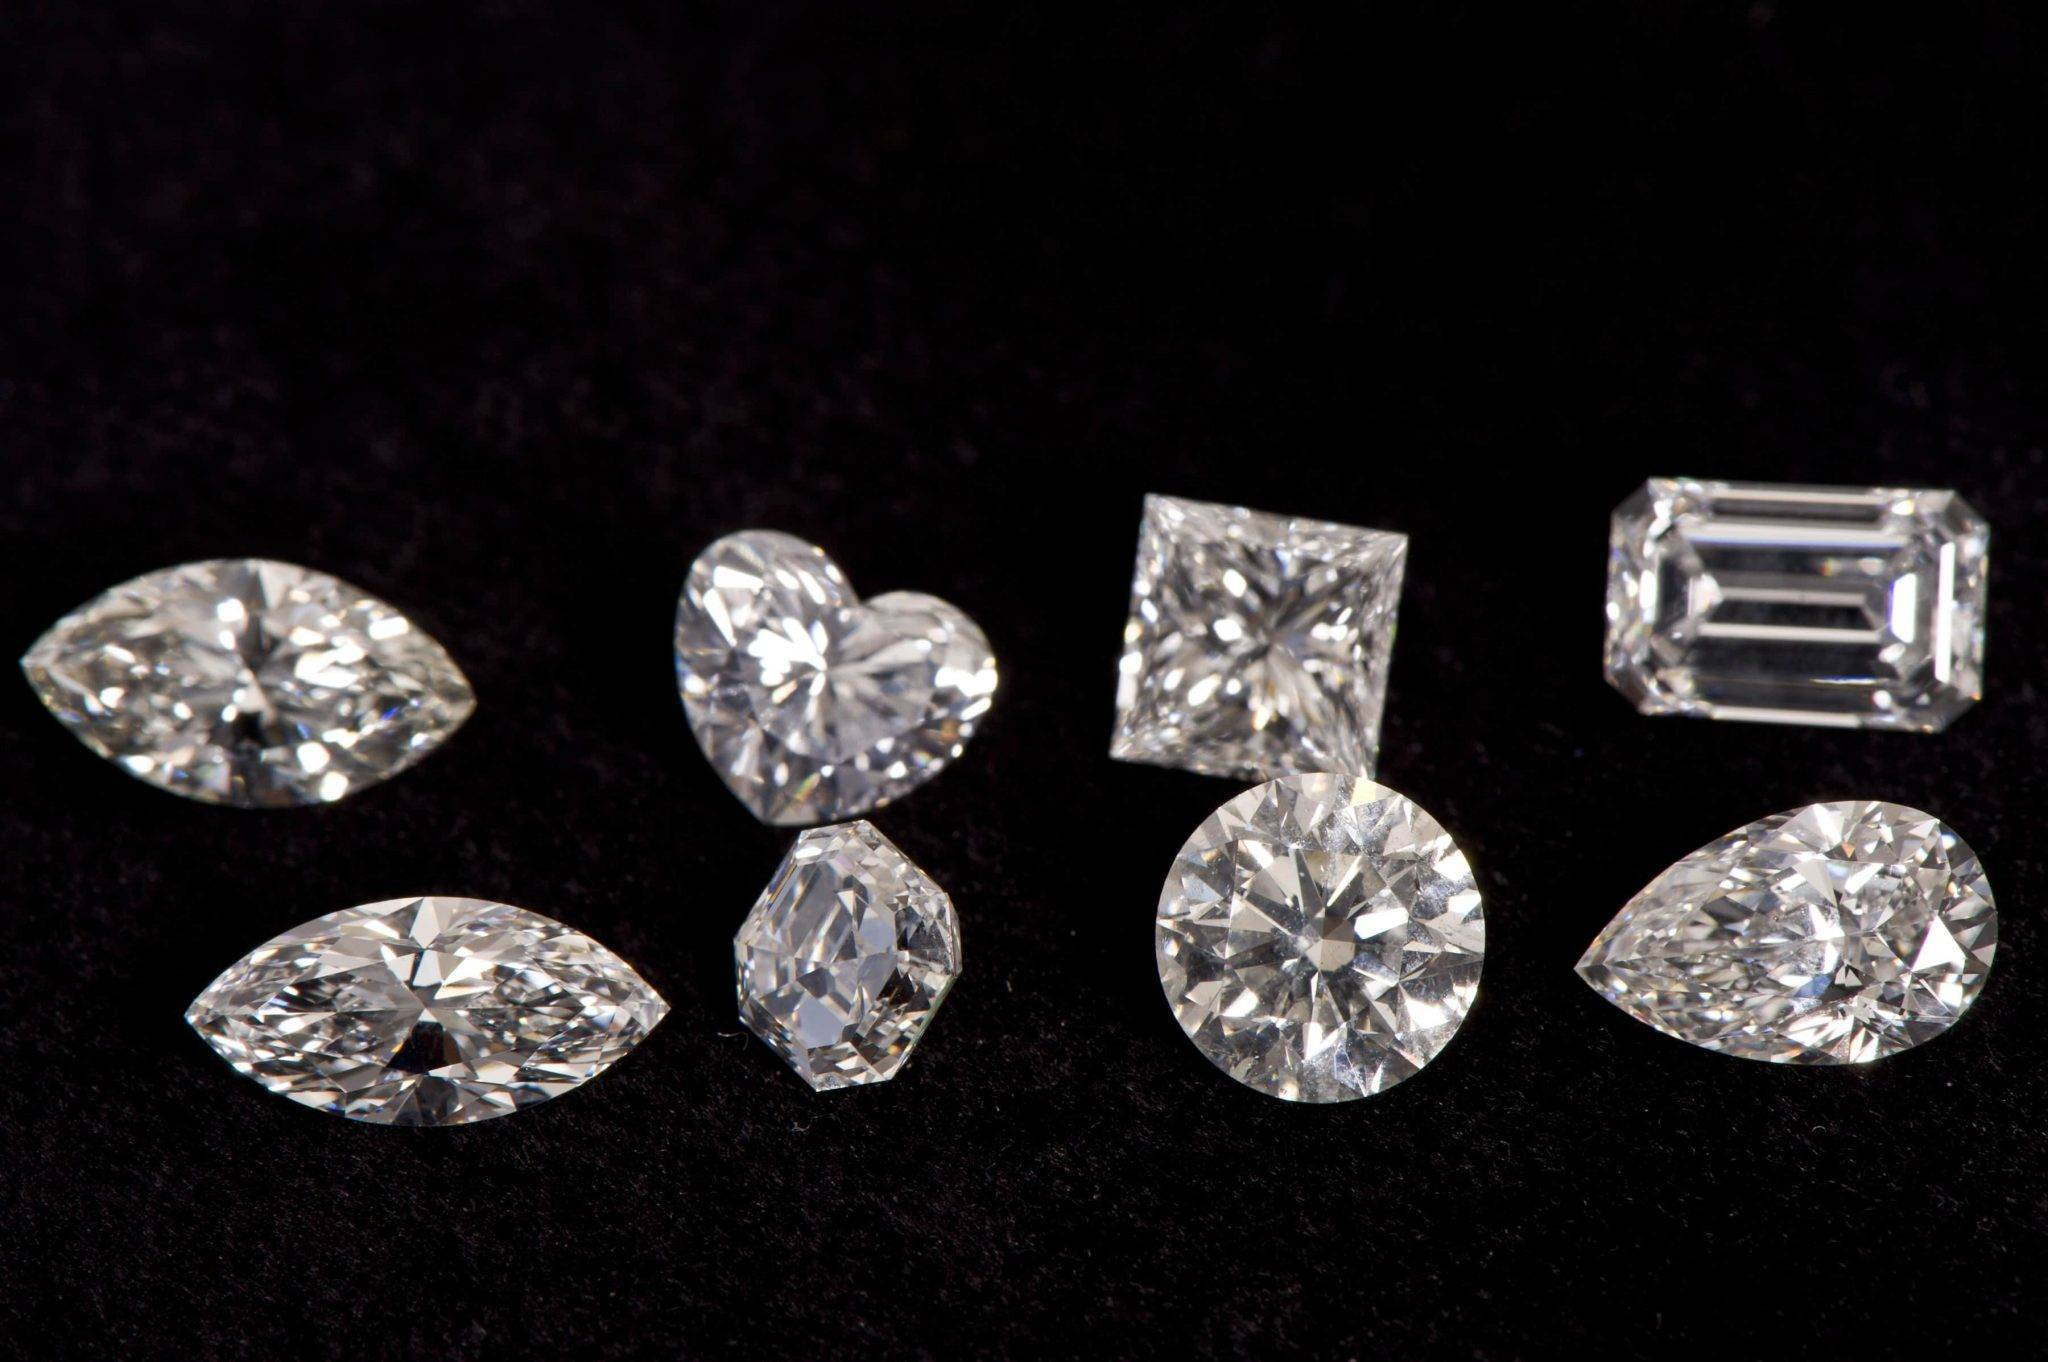 a cluster of diamonds